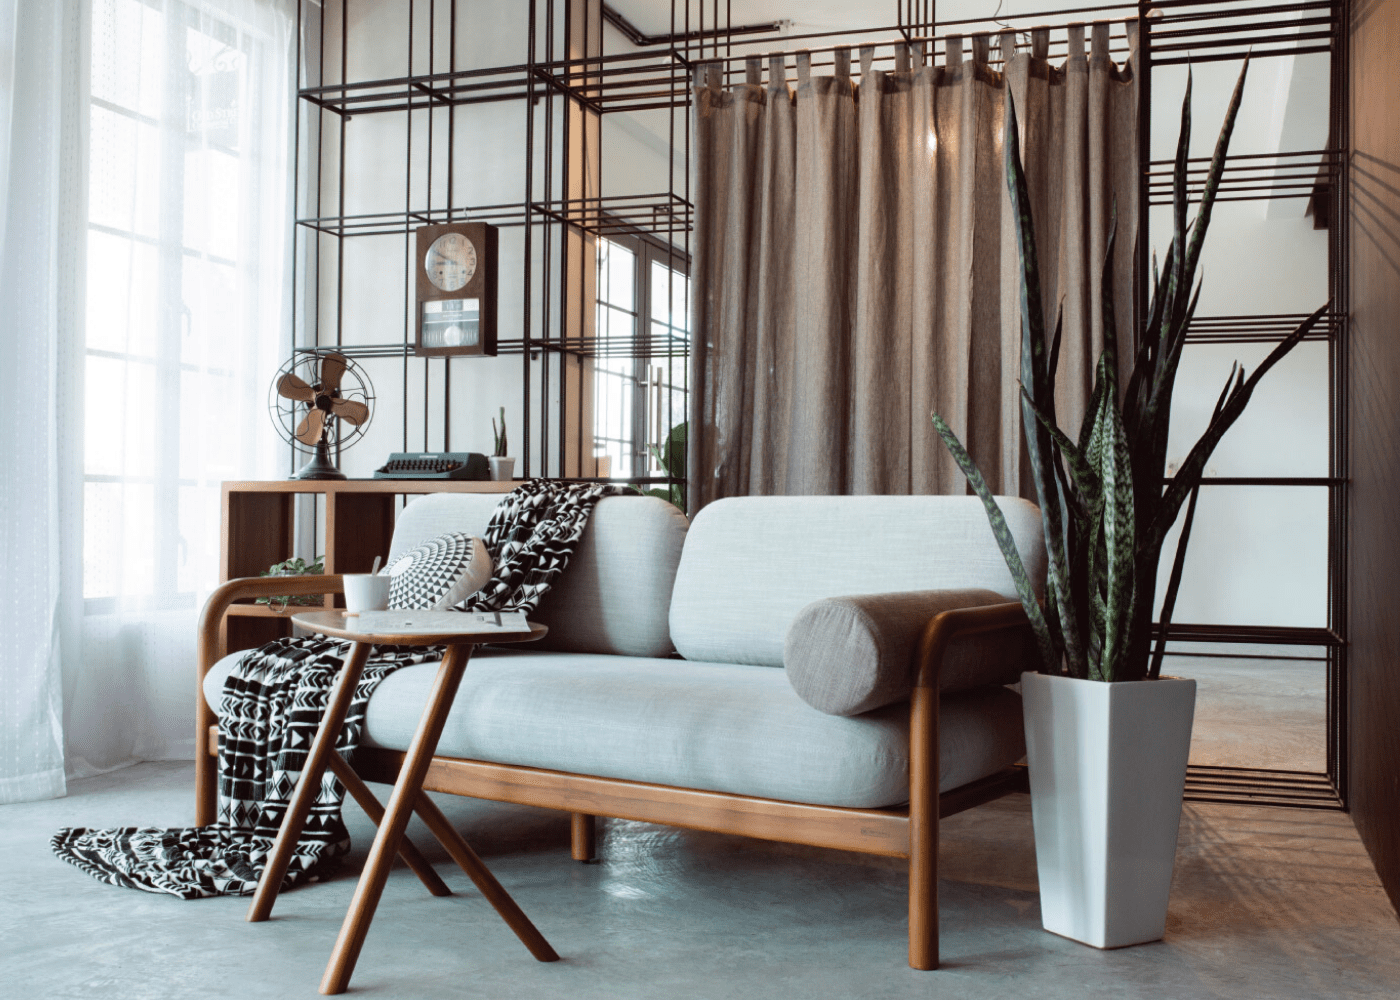 Declutter and spruce up your abode with Scanteak's Scandinavian-inspired furnishings